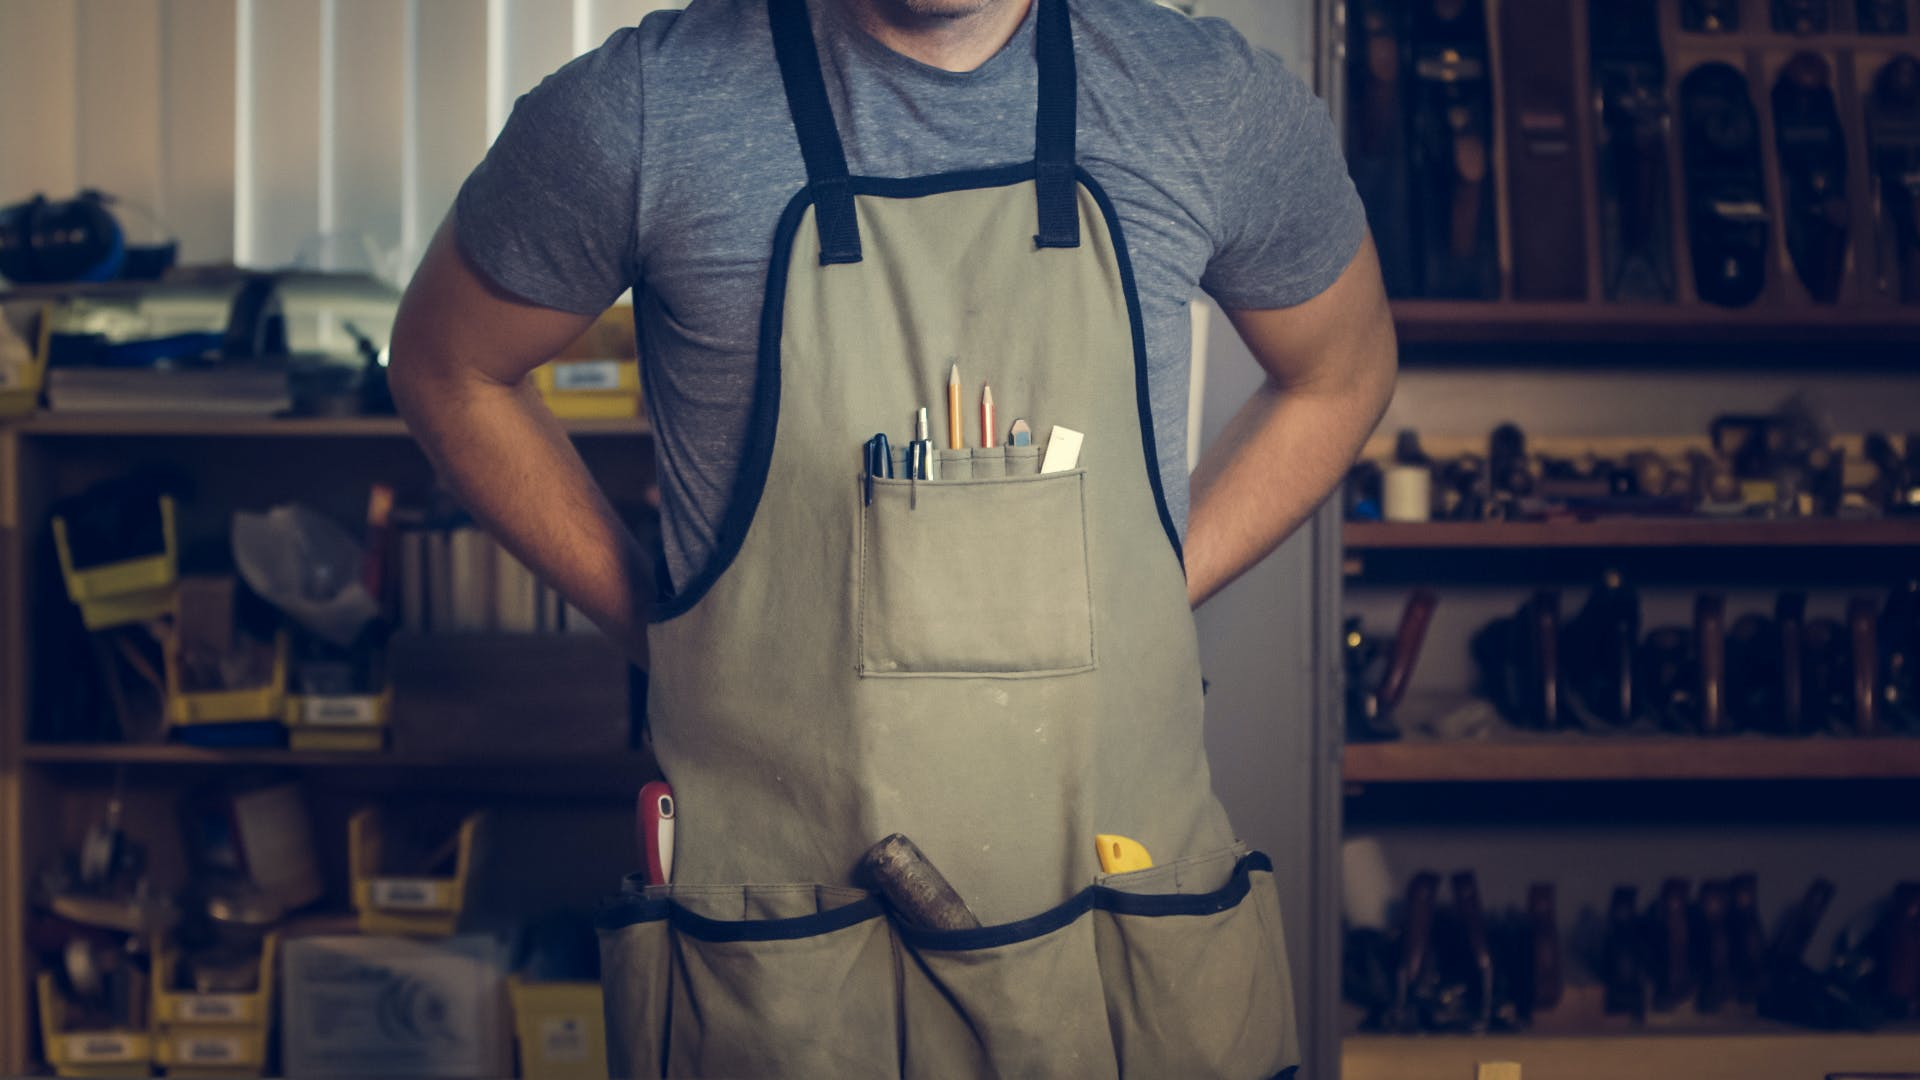 Photo of Man Wearing Gray Shirt and Apron